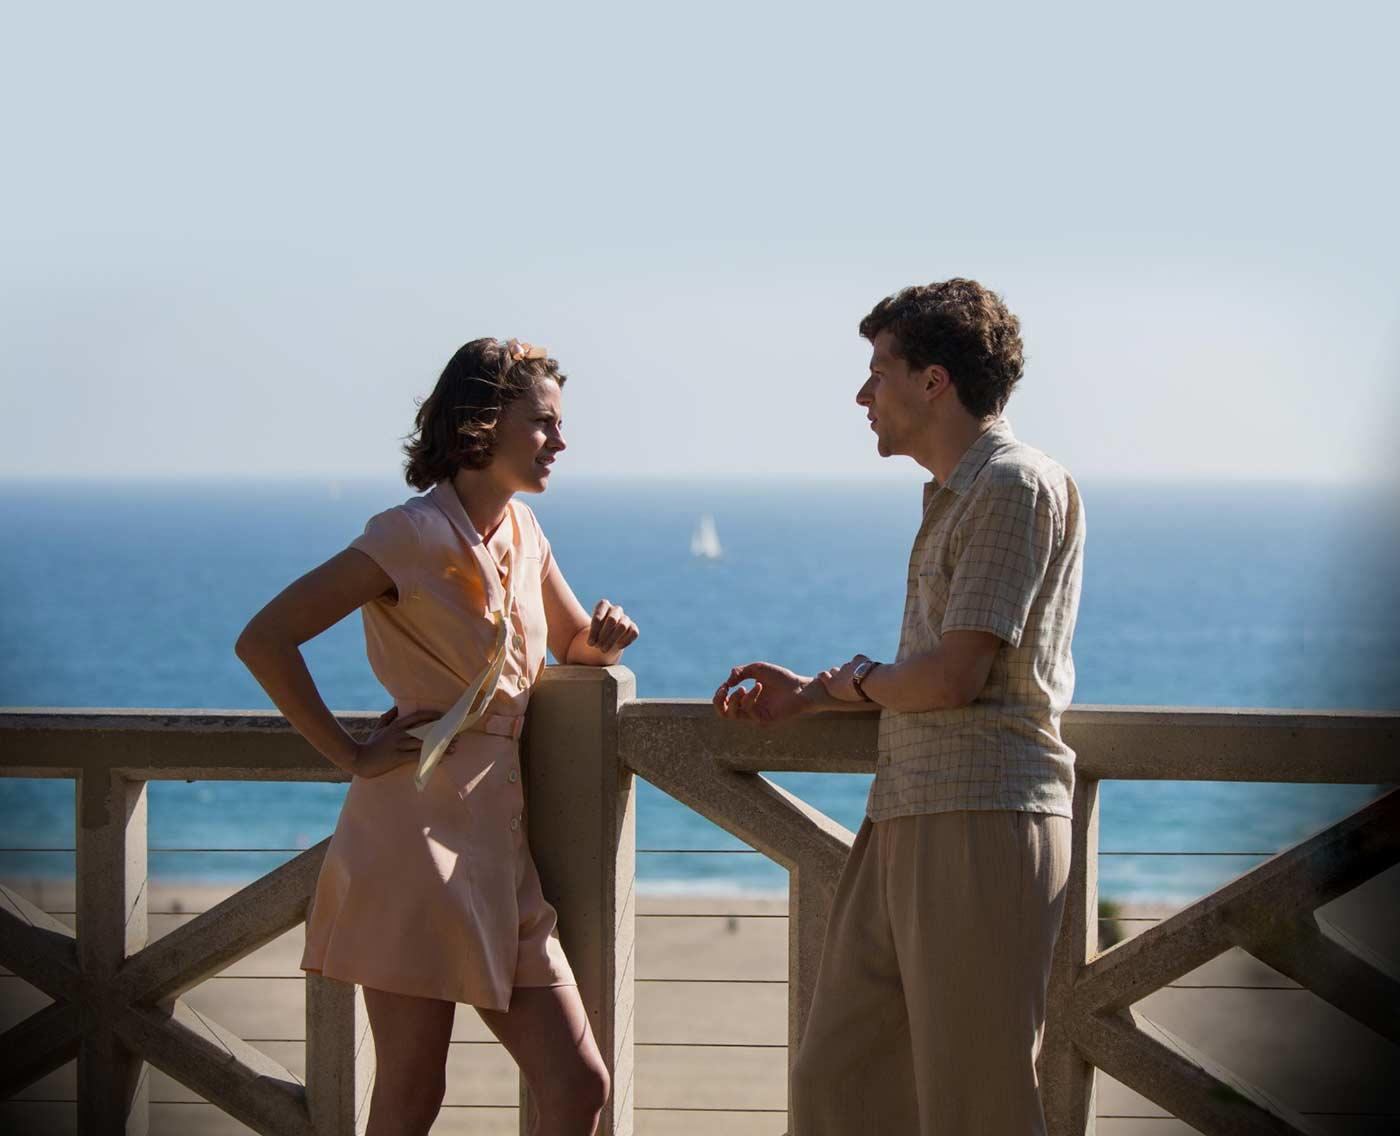 Check out the movie photos of 'Cafe Society'